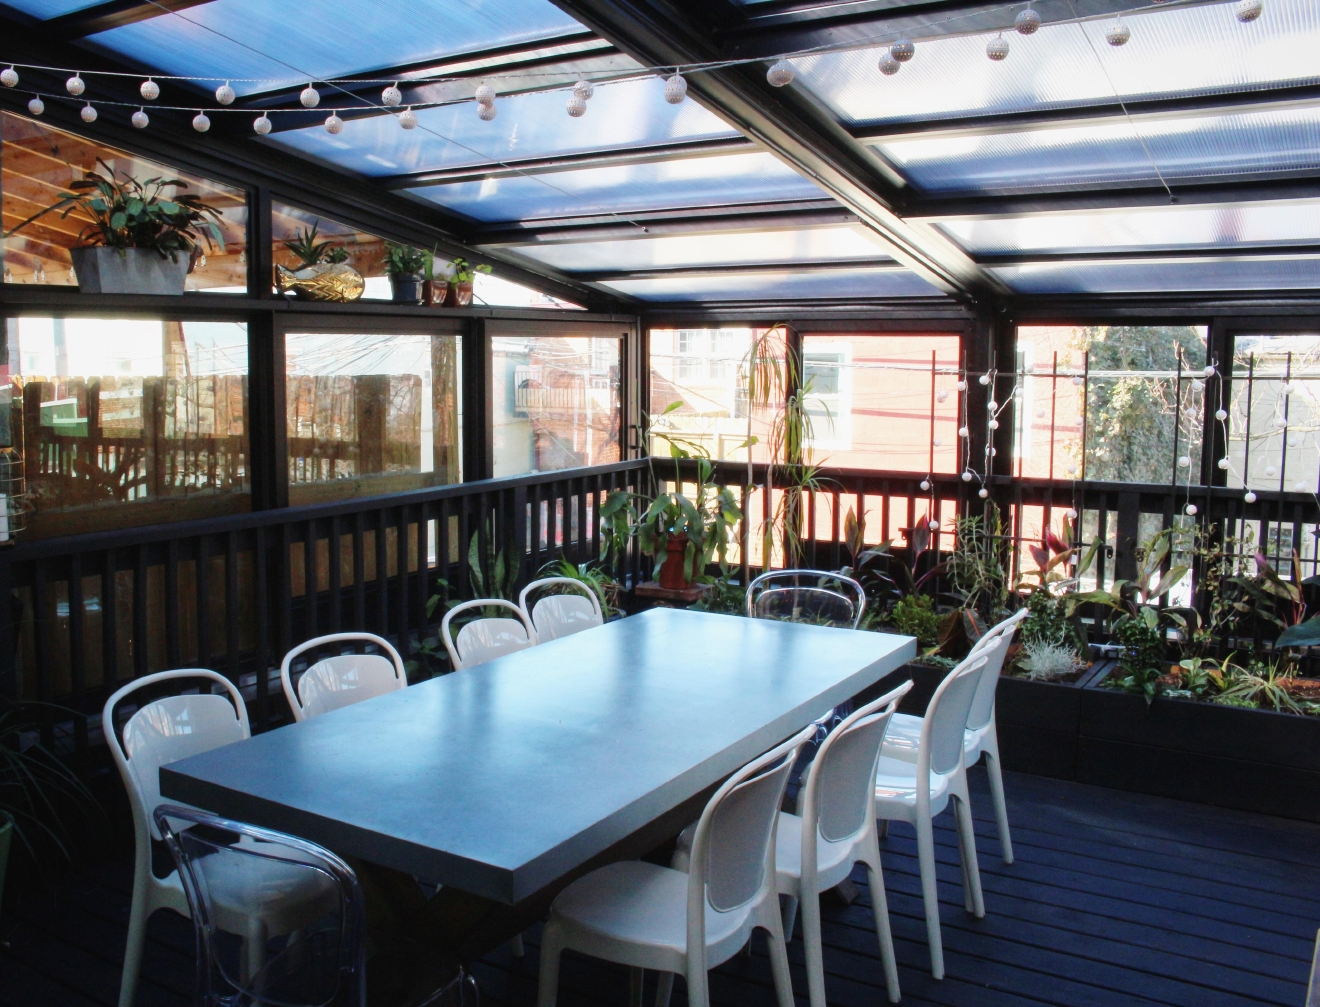 For $125/person you and 5-7 guests can dine on Aaron Silverman's greenhouse-inspired roof and enjoy a customized tasting menu. Only one reservation per night is taken for this experience. (Image: Jordan Anthony-Brown)